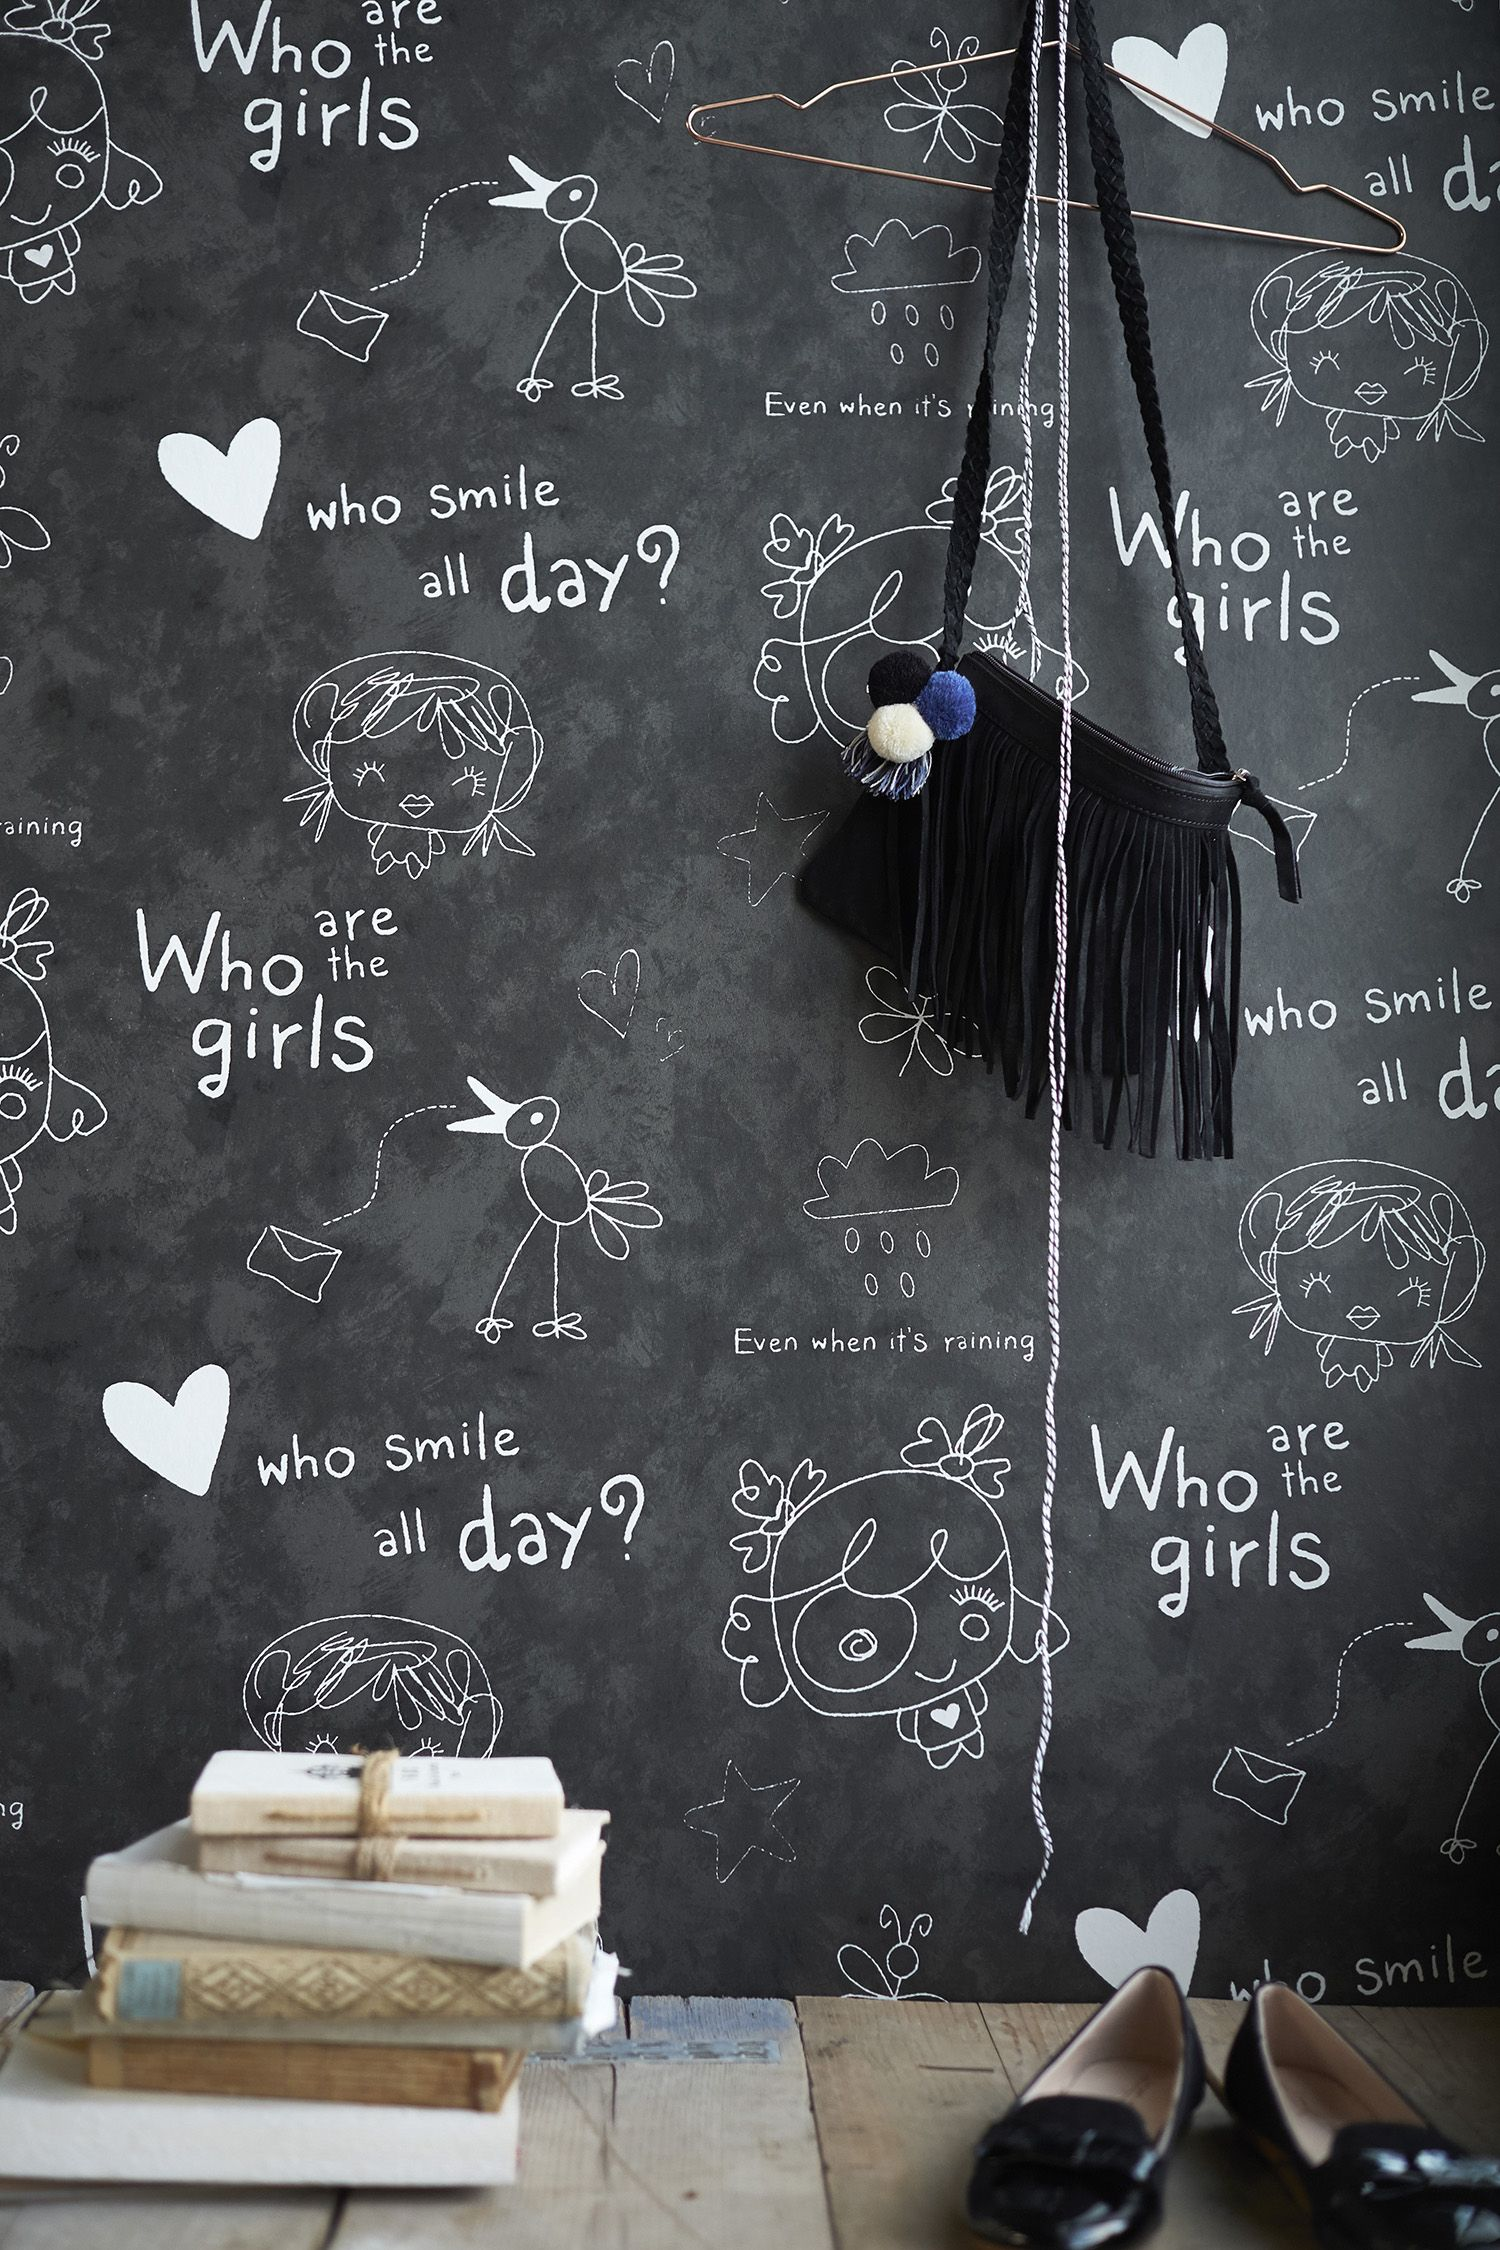 Chalkboards, Smile and Wallpapers on Pinterest